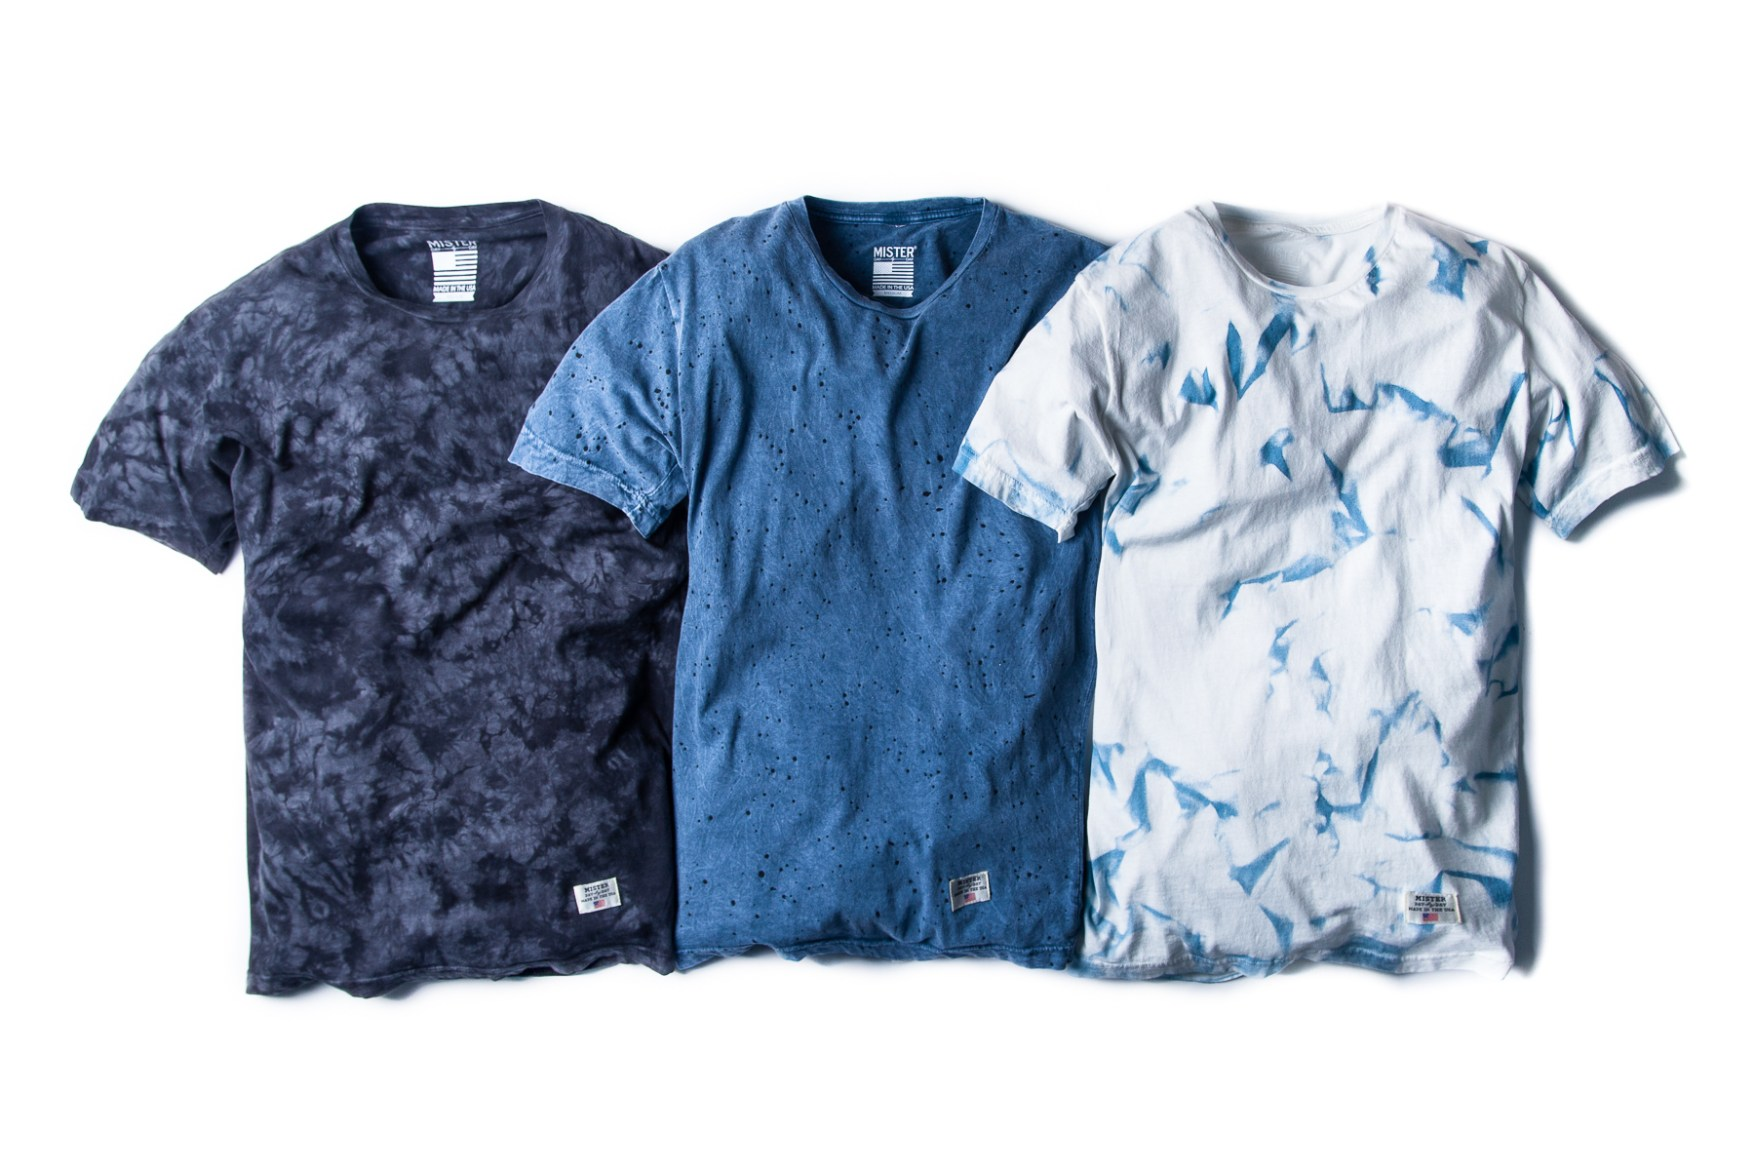 Mister 2014 Patterned T-Shirt Collection